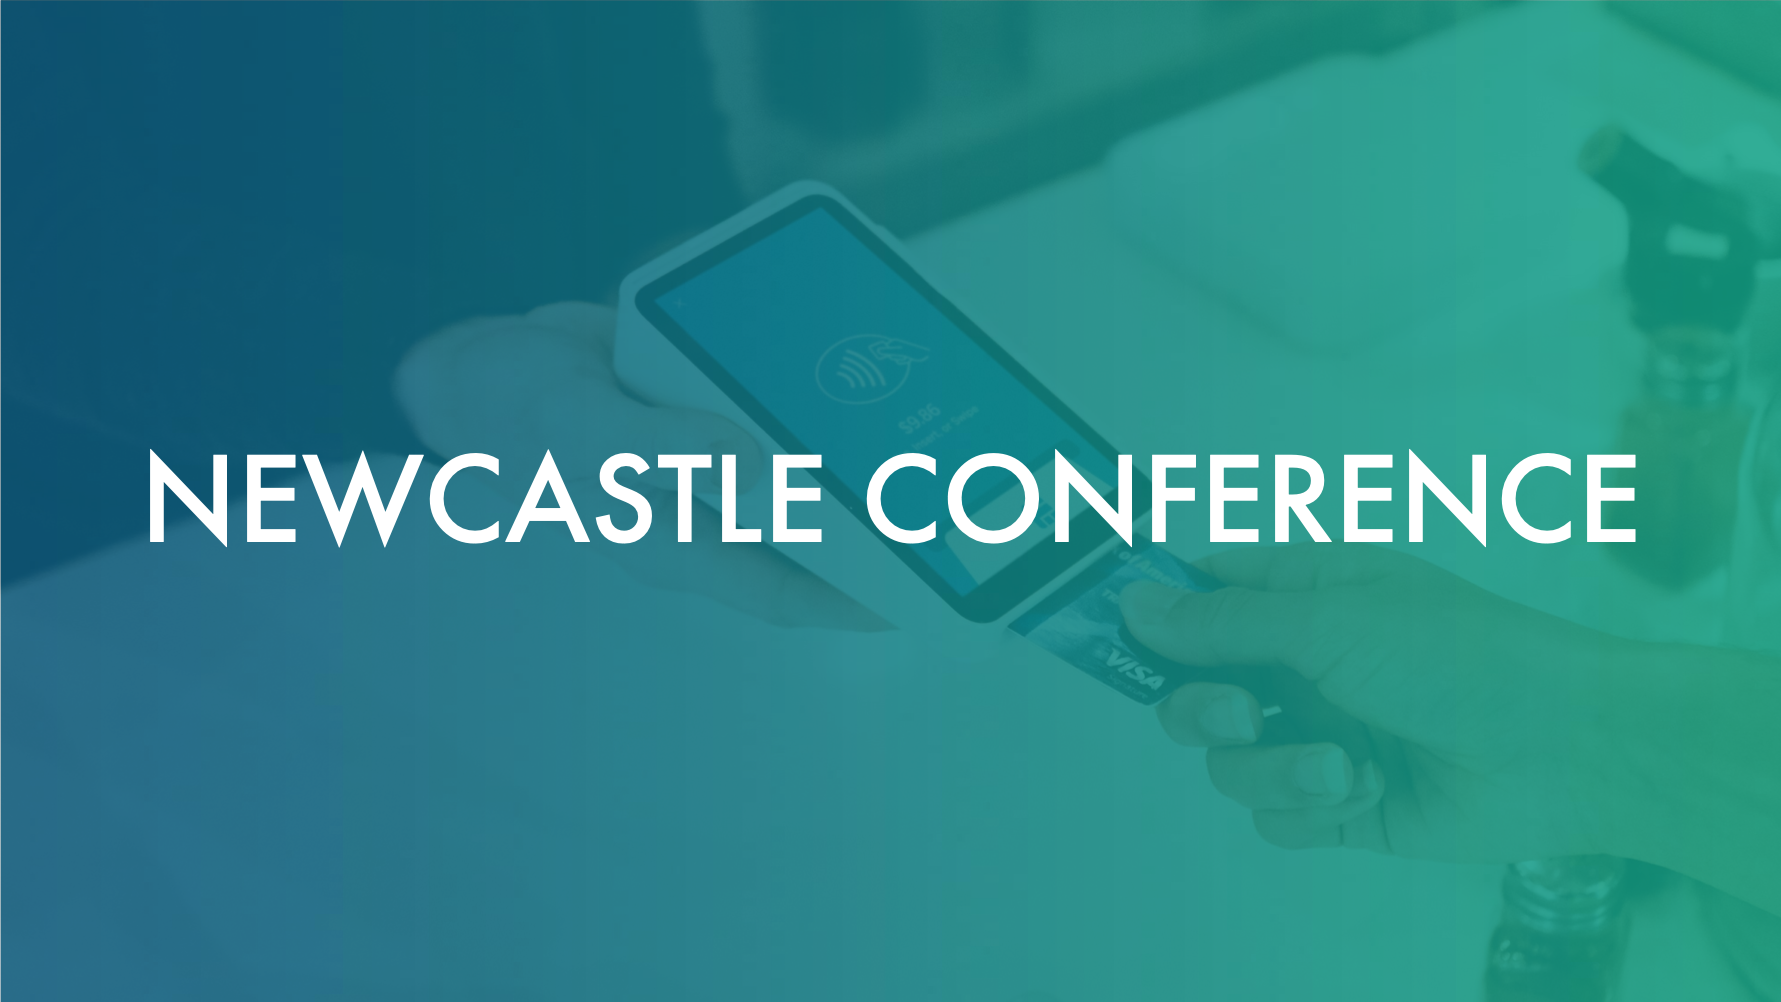 Newcastle Conference